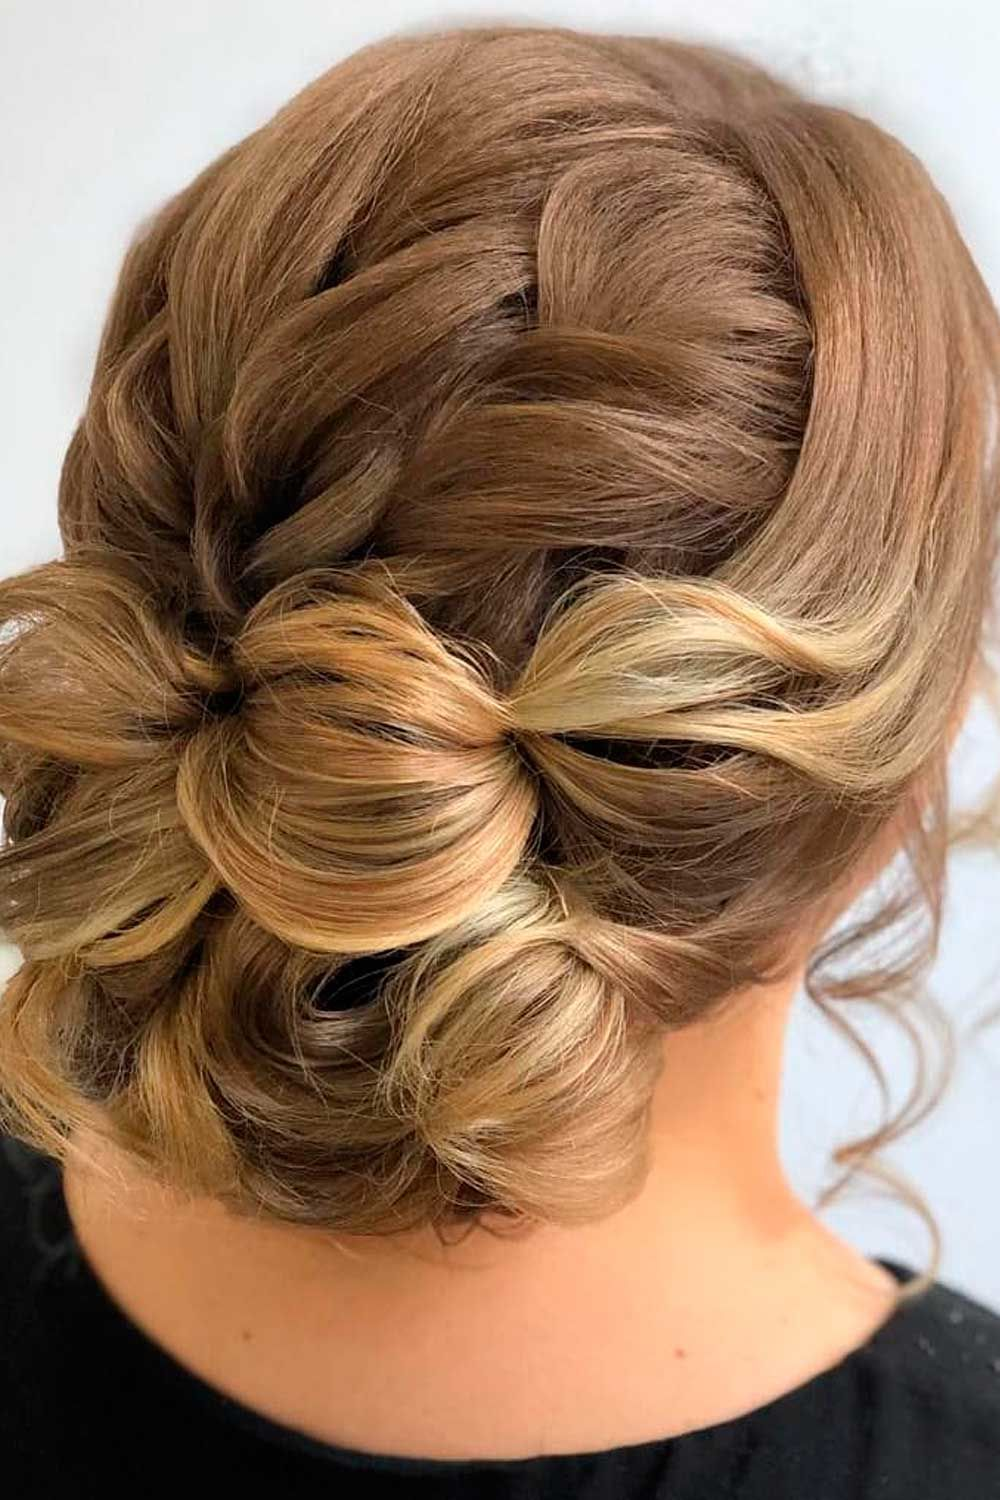 Textured Updo With Twisted Curls